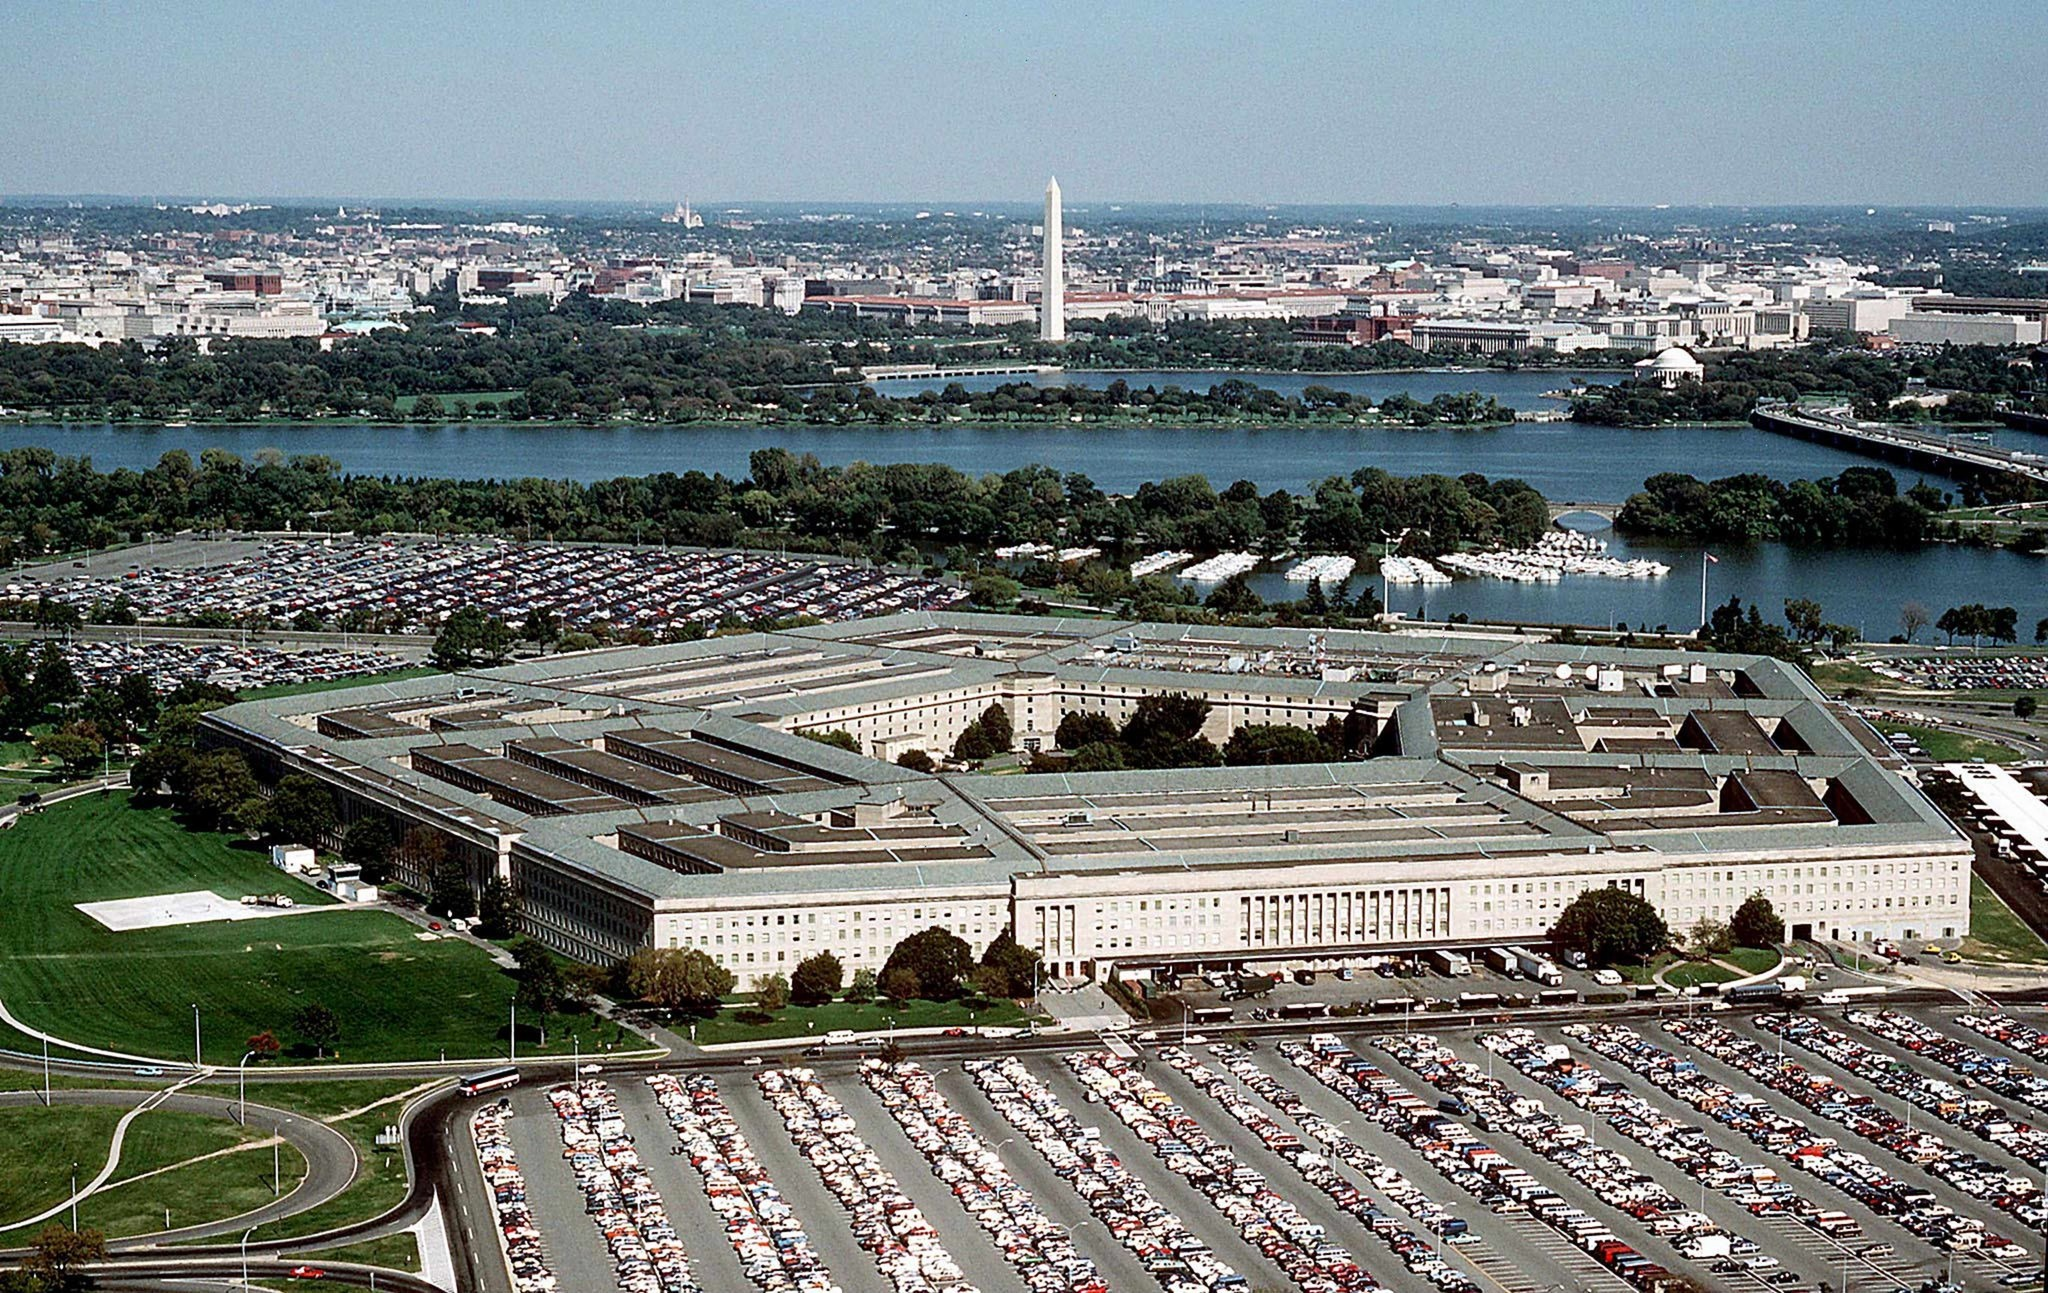 The Pentagon.